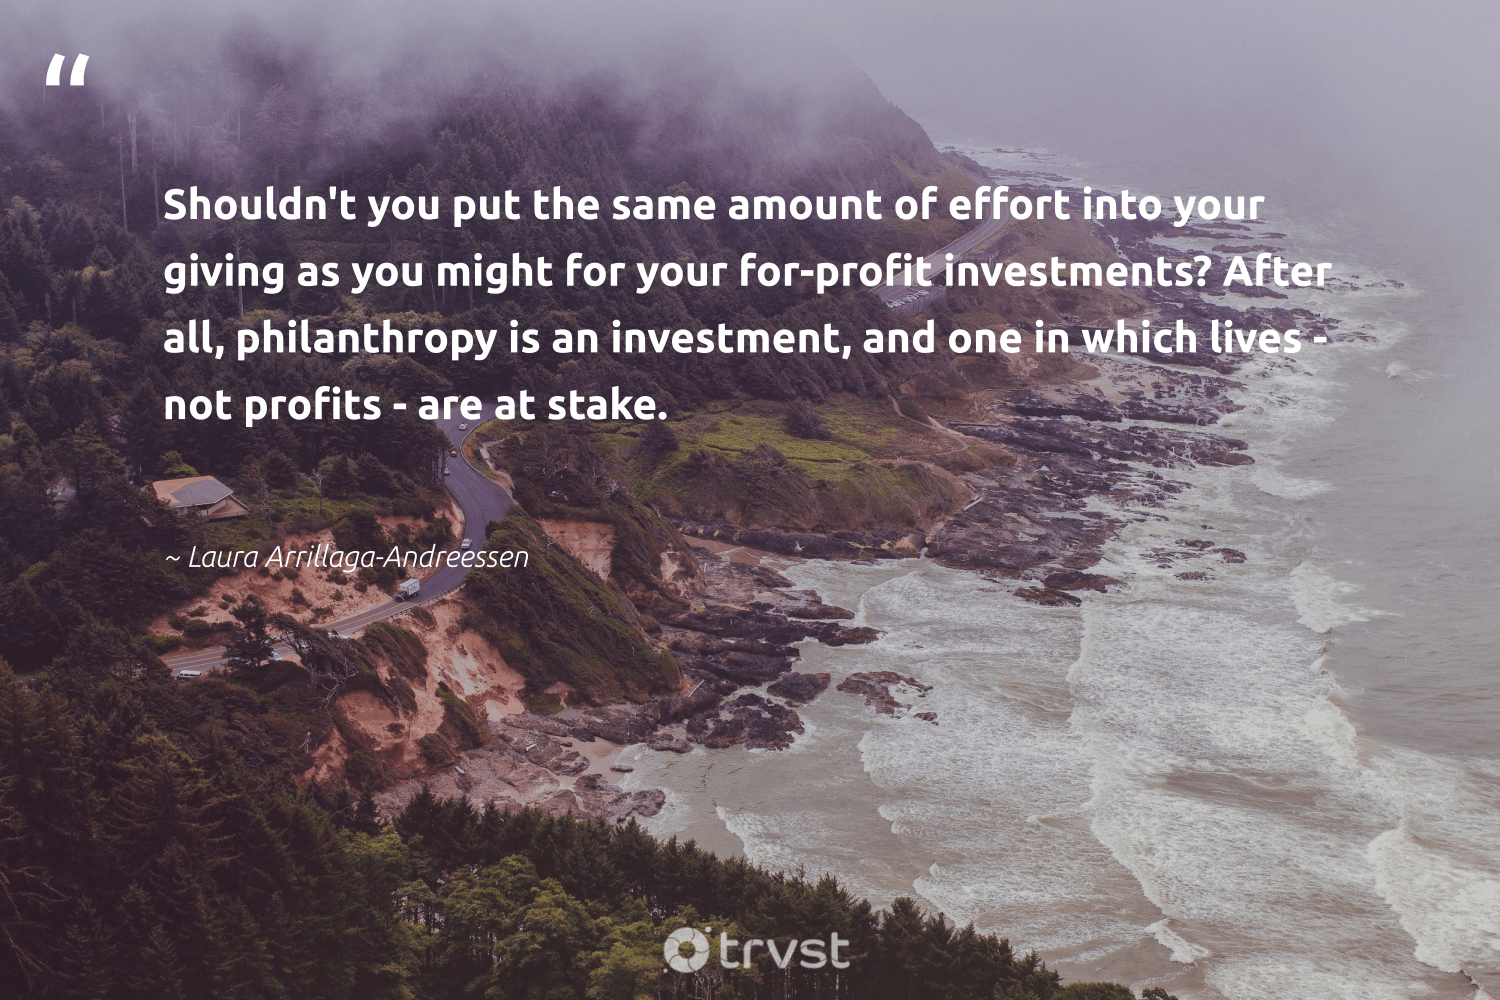 """Shouldn't you put the same amount of effort into your giving as you might for your for-profit investments? After all, philanthropy is an investment, and one in which lives - not profits - are at stake.""  - Laura Arrillaga-Andreessen #trvst #quotes #philanthropy #philanthropic #togetherwecan #giveforthefuture #gogreen #changemakers #itscooltobekind #thinkgreen #dogood #dotherightthing"